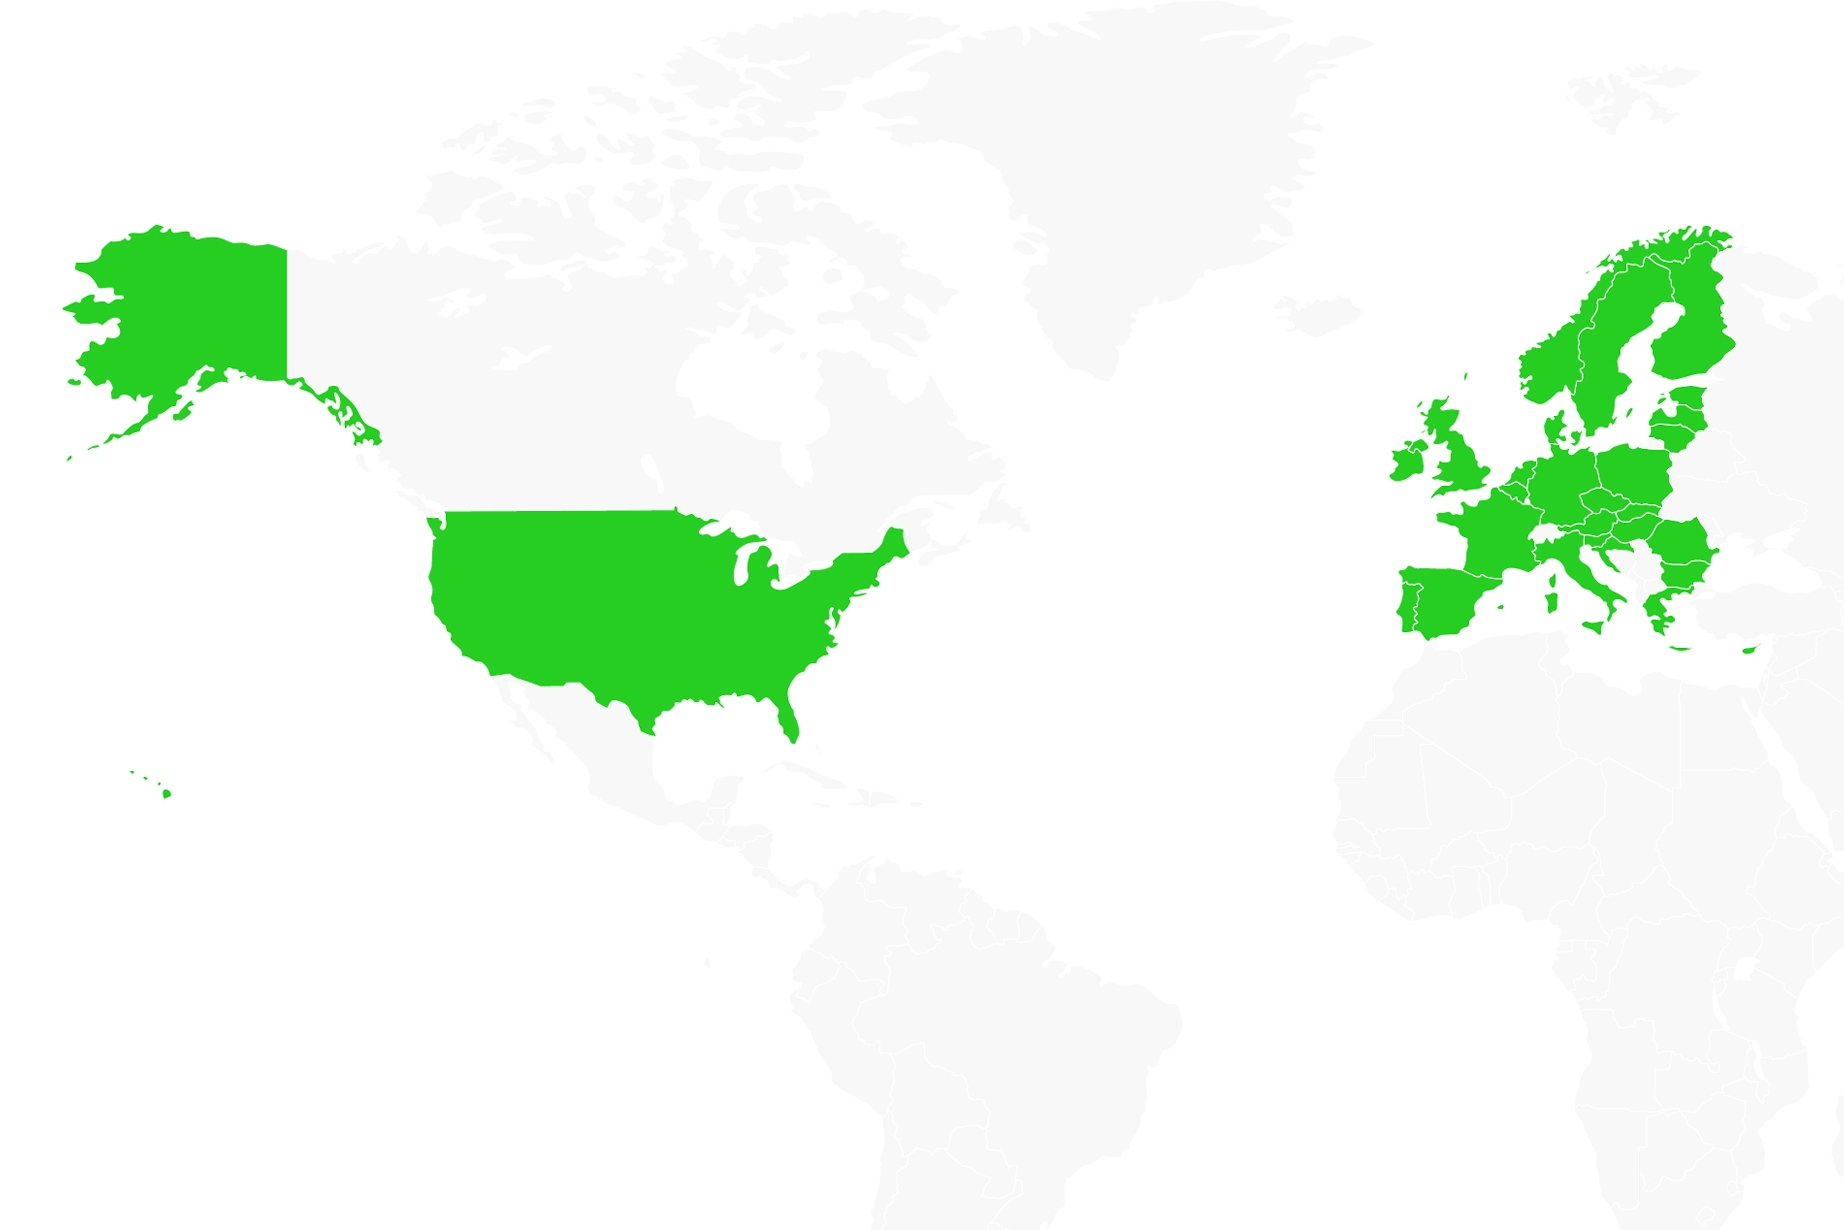 Trustly Partners - Trustly coverage map